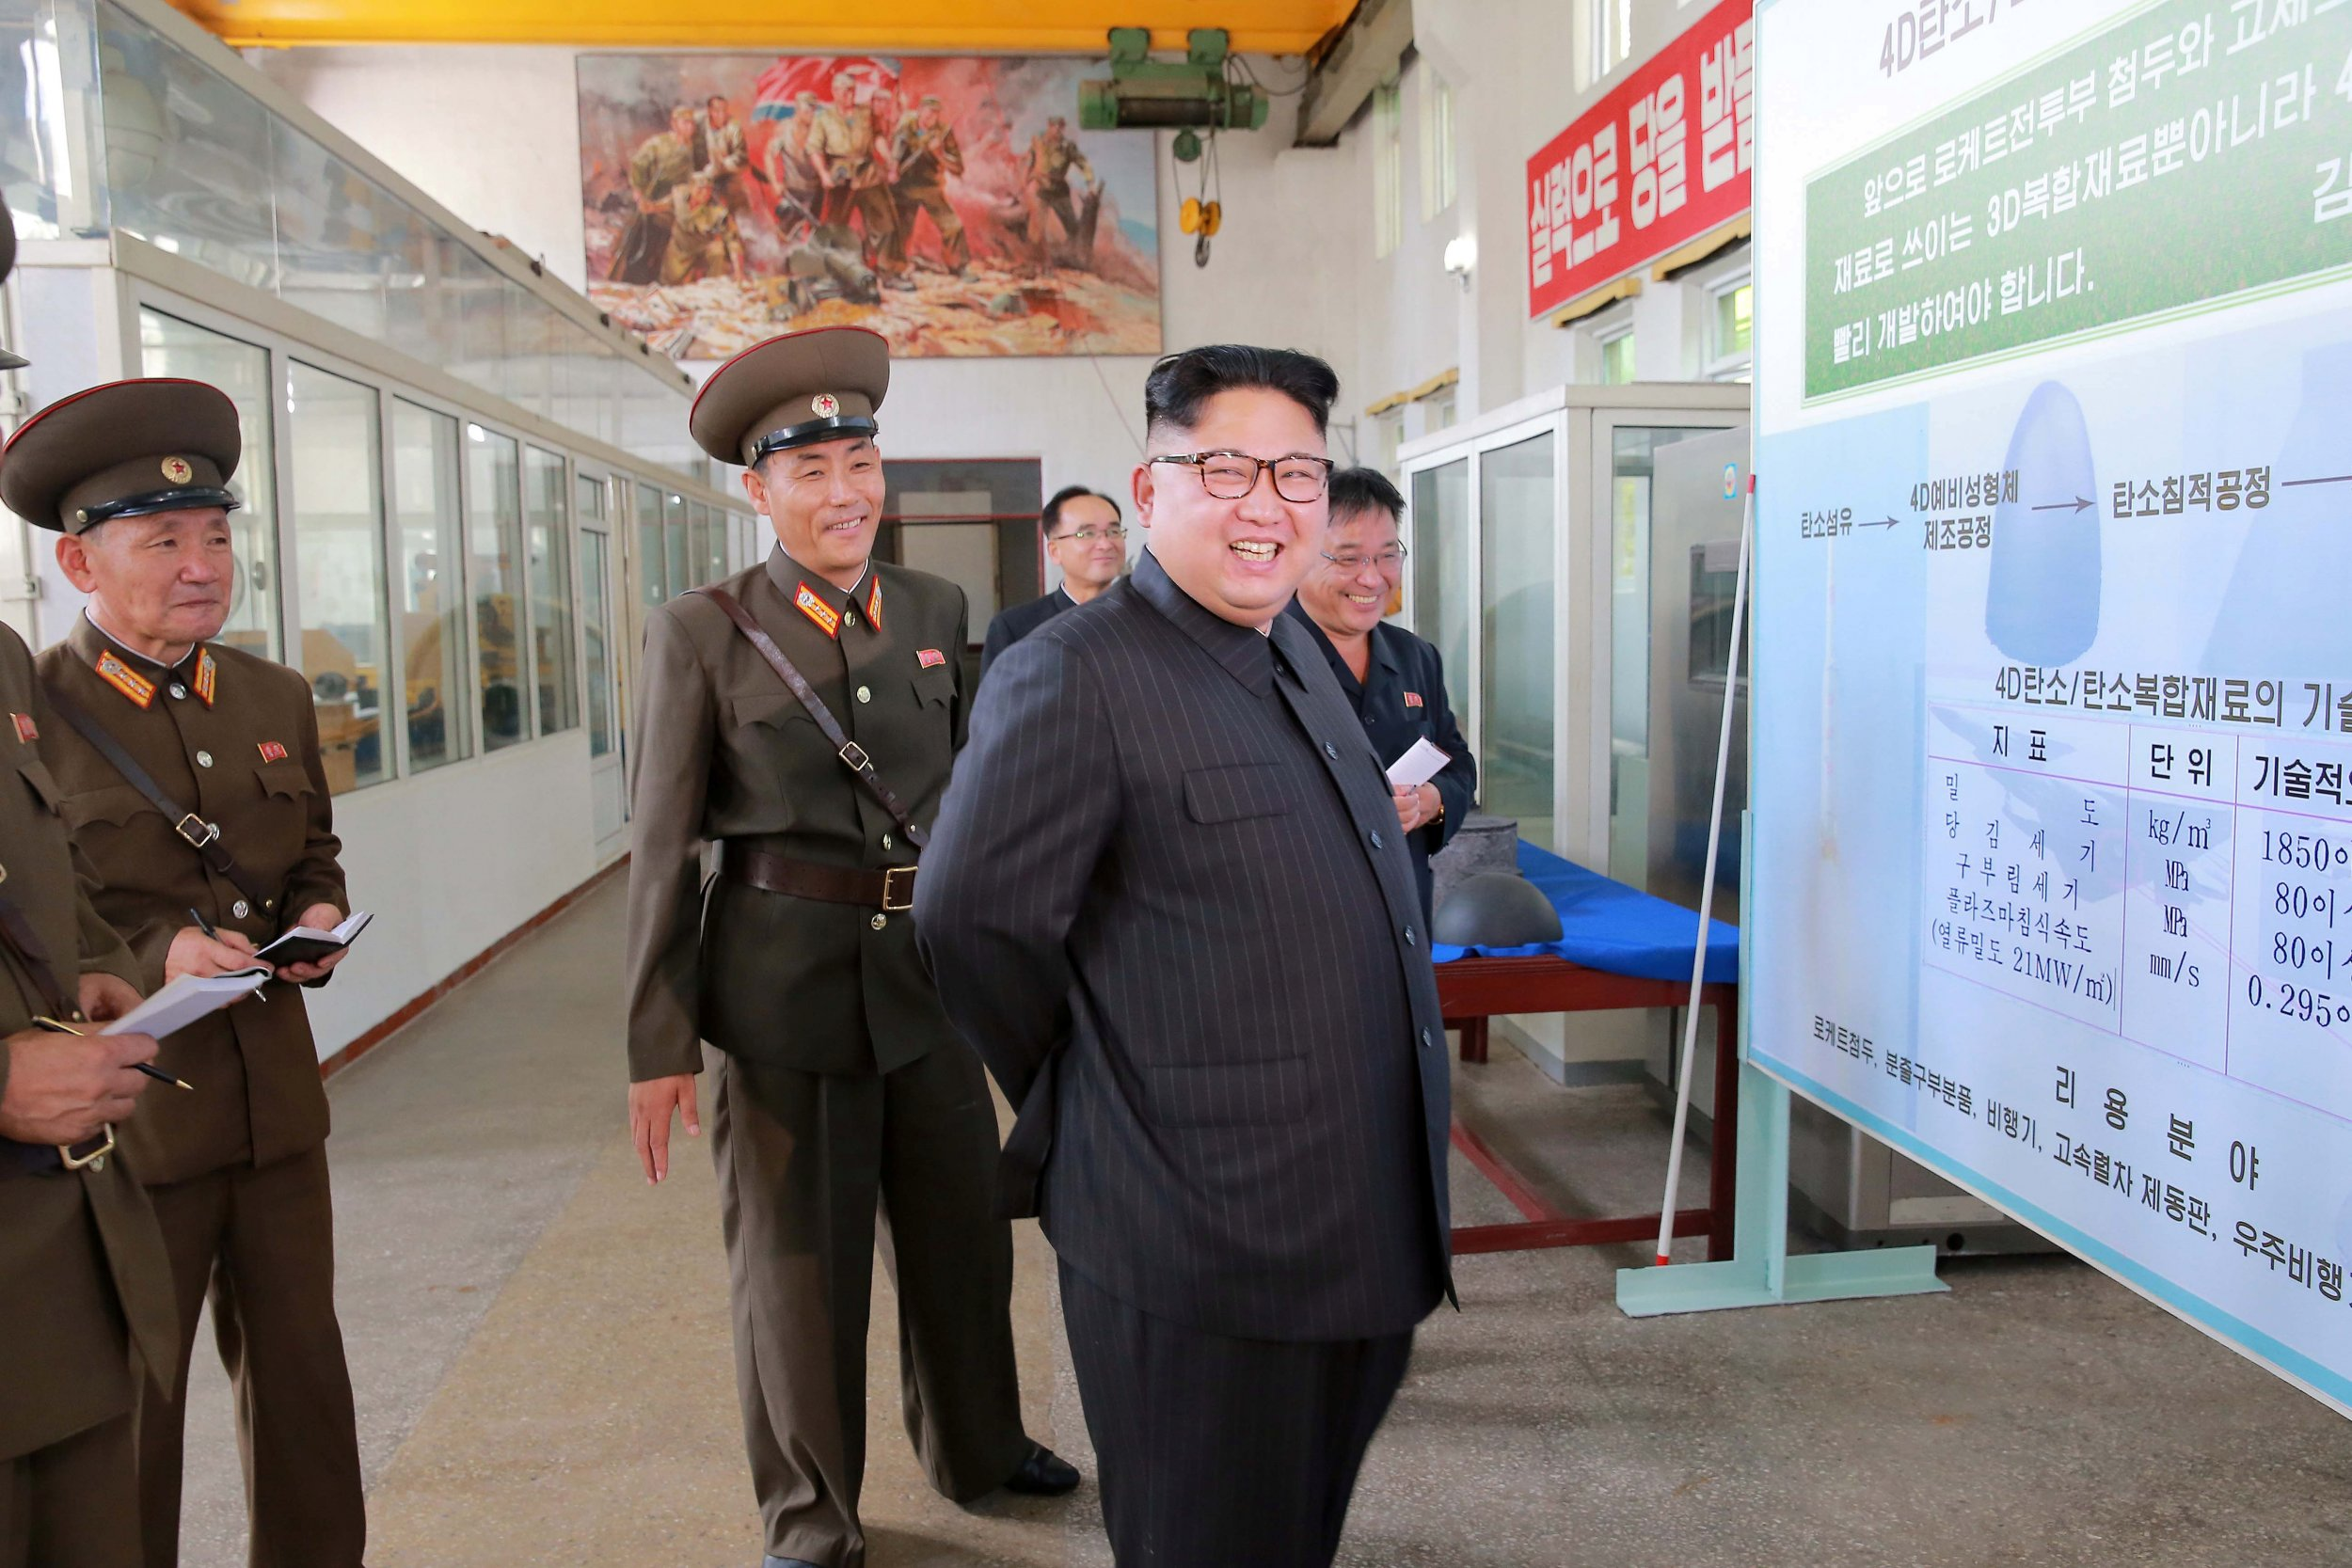 Kim Jong Un wants his country to produce more warheads